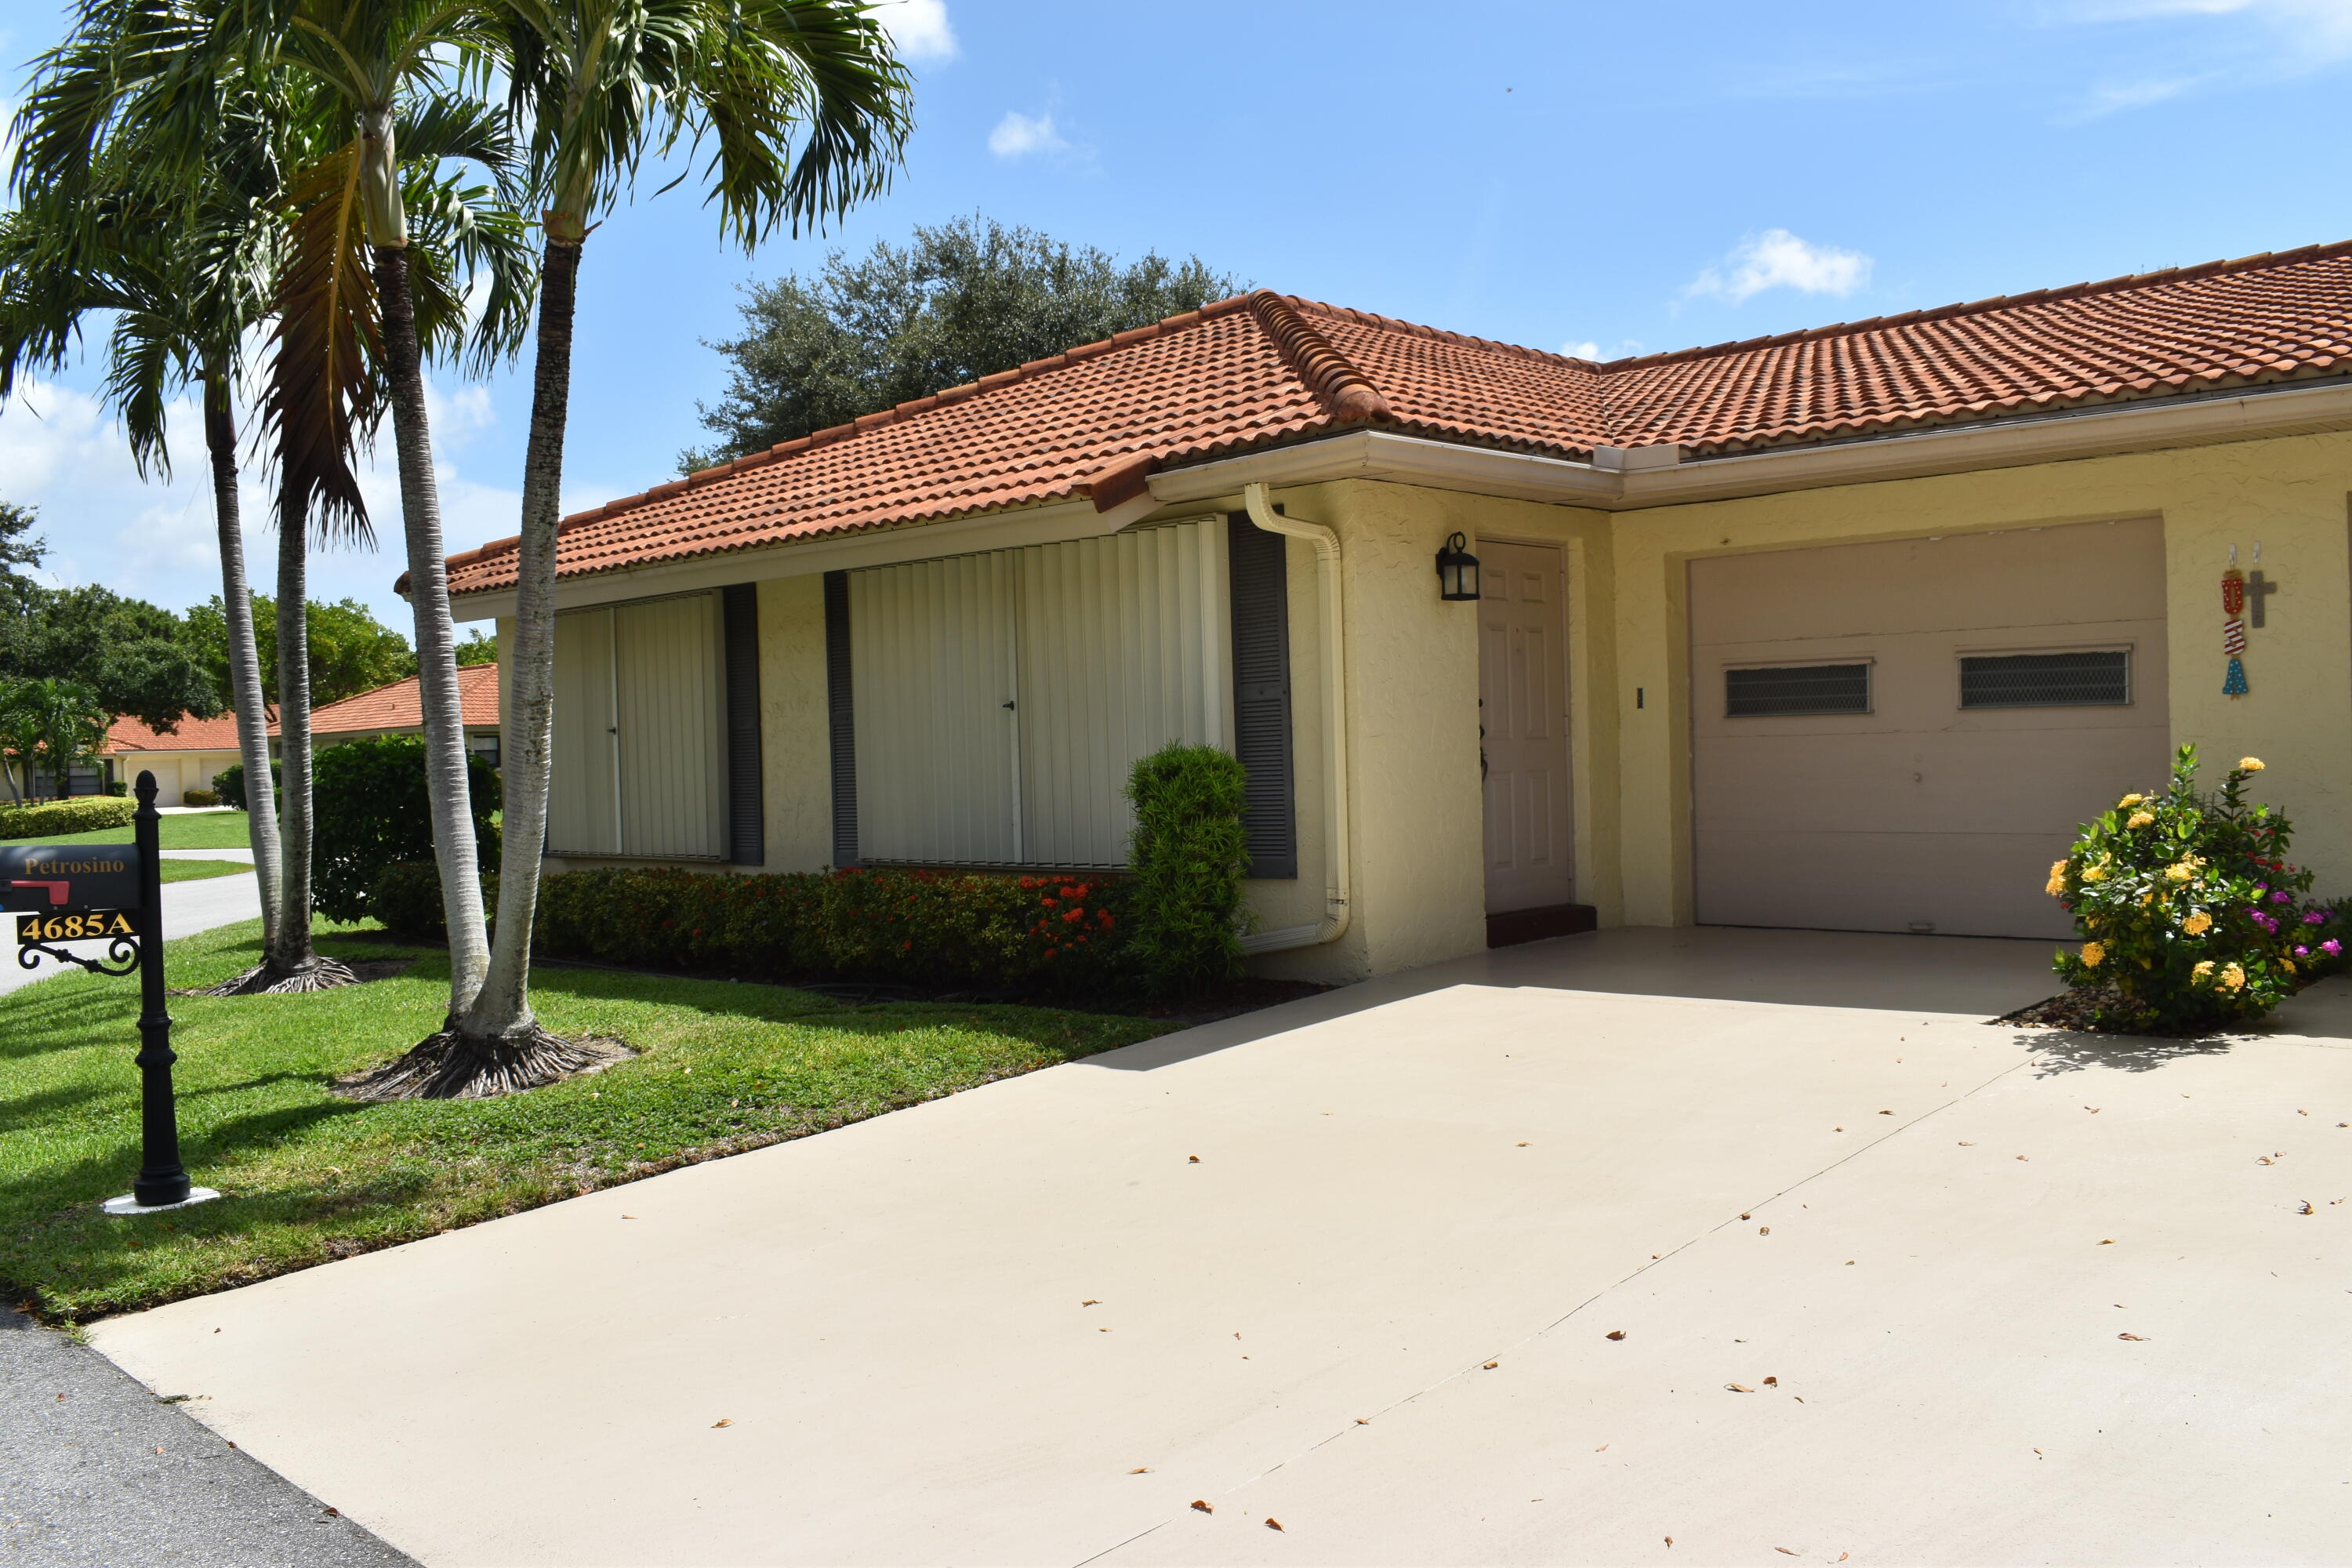 4685  Rosewood Tree Court A For Sale 10733541, FL